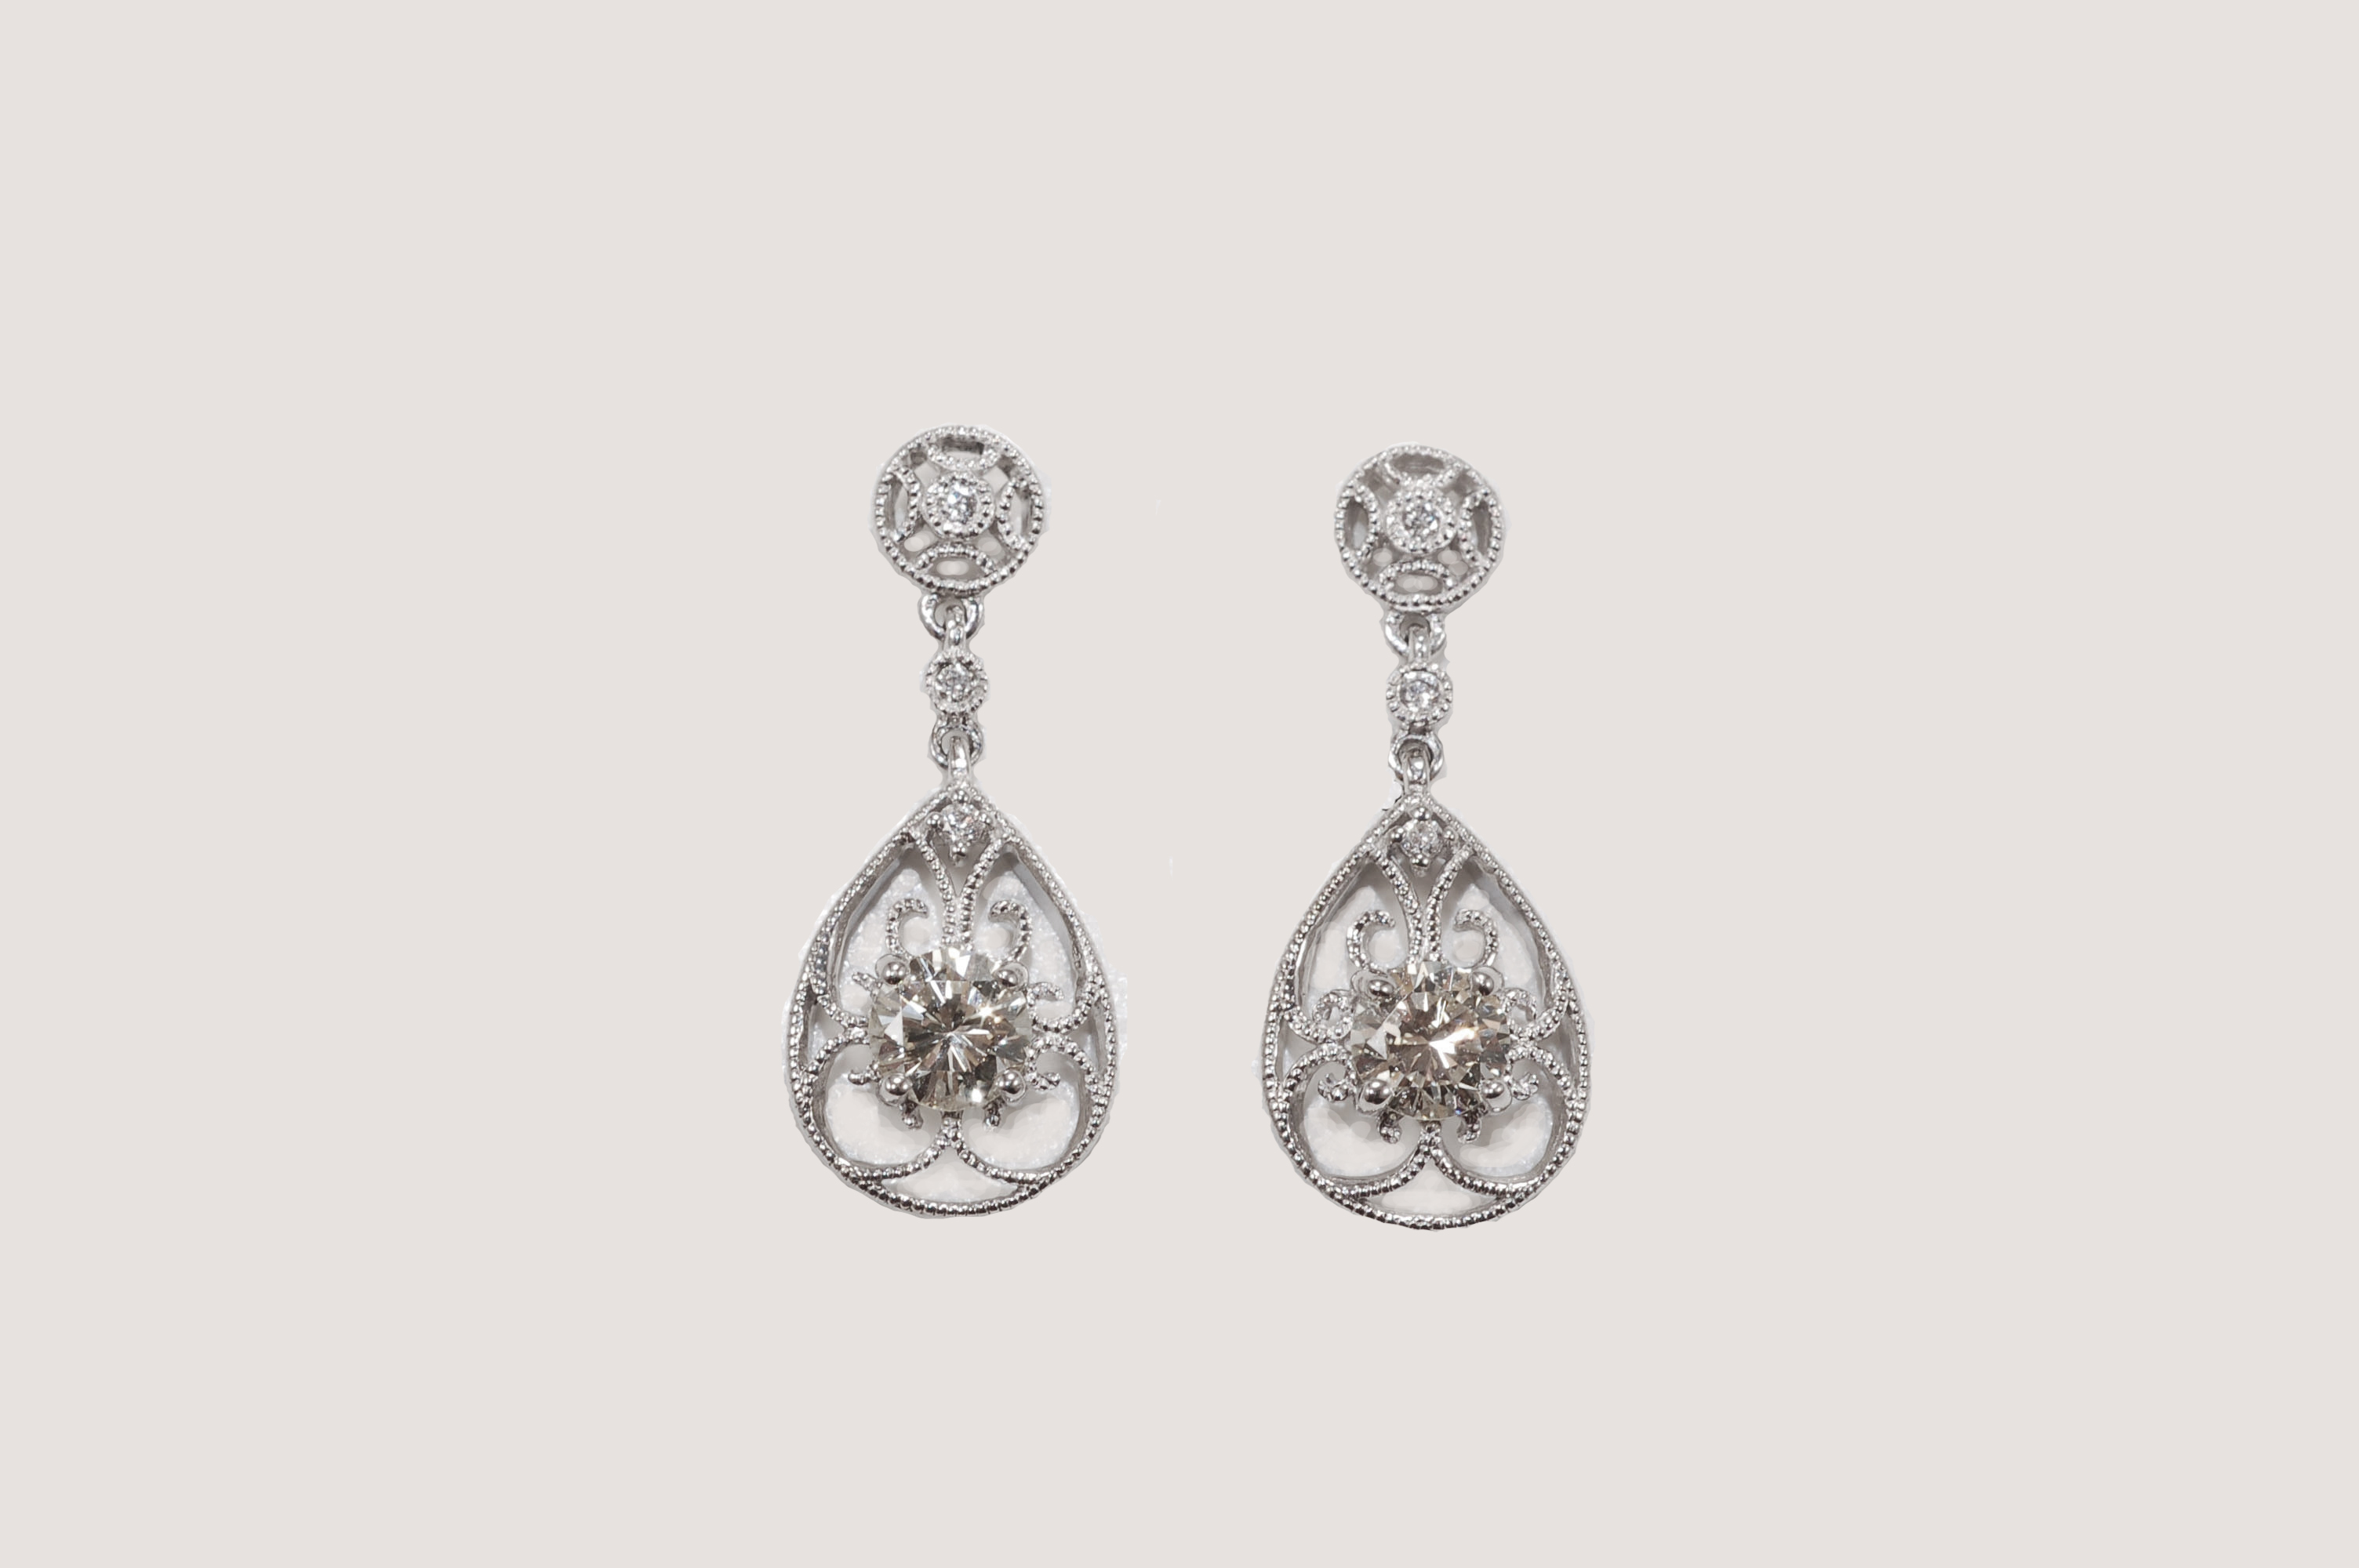 gallery jewelry kunzite lyst white gold earrings in renee lewis